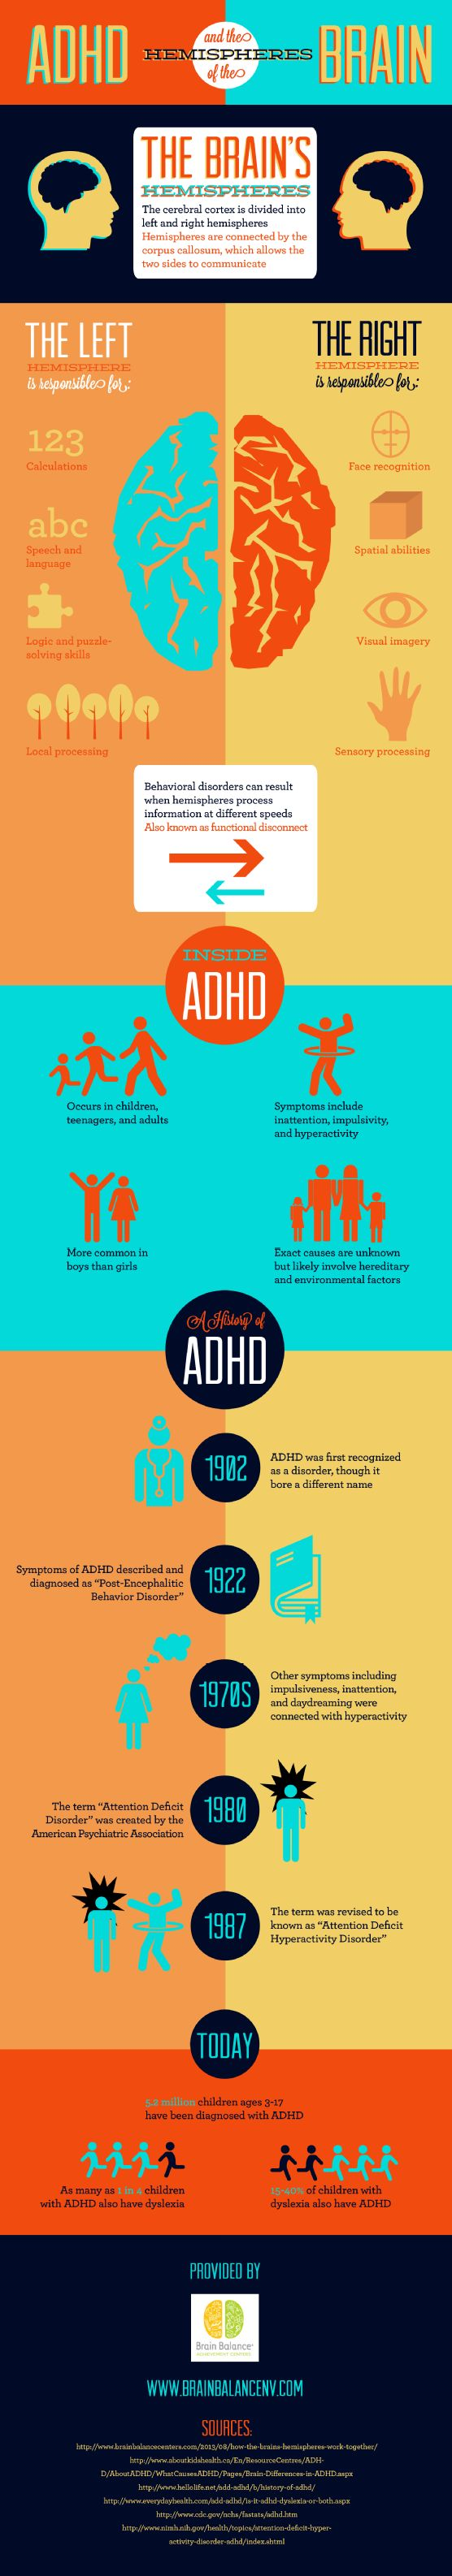 ADHD and The Brain Hemispheres (Infographic)                                                                                                                                                                                 More